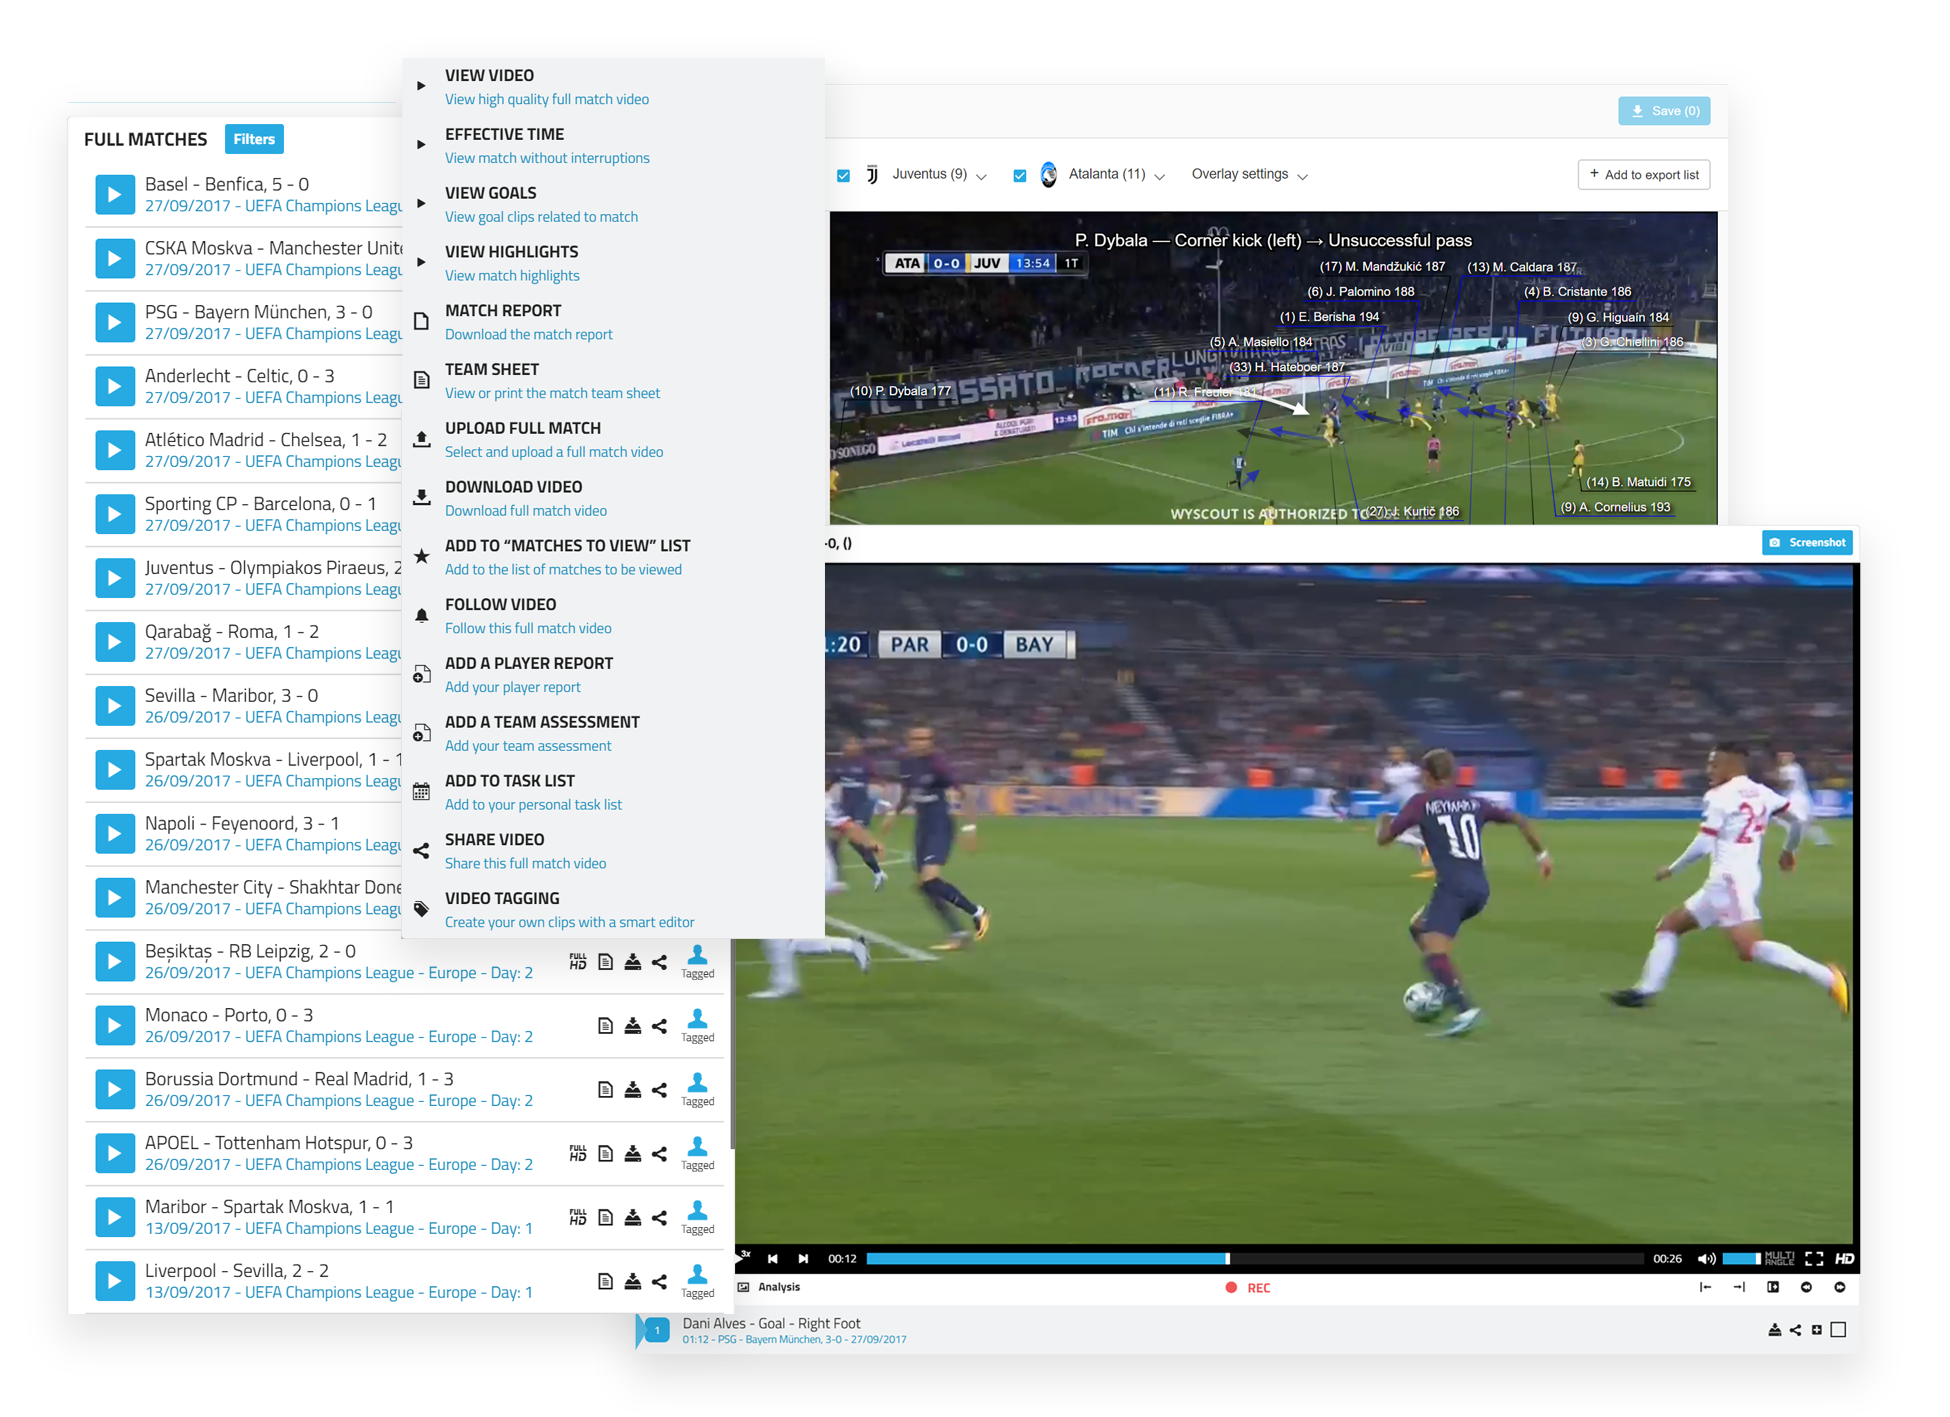 Professional Football Platform for Football Analysis - Wyscout